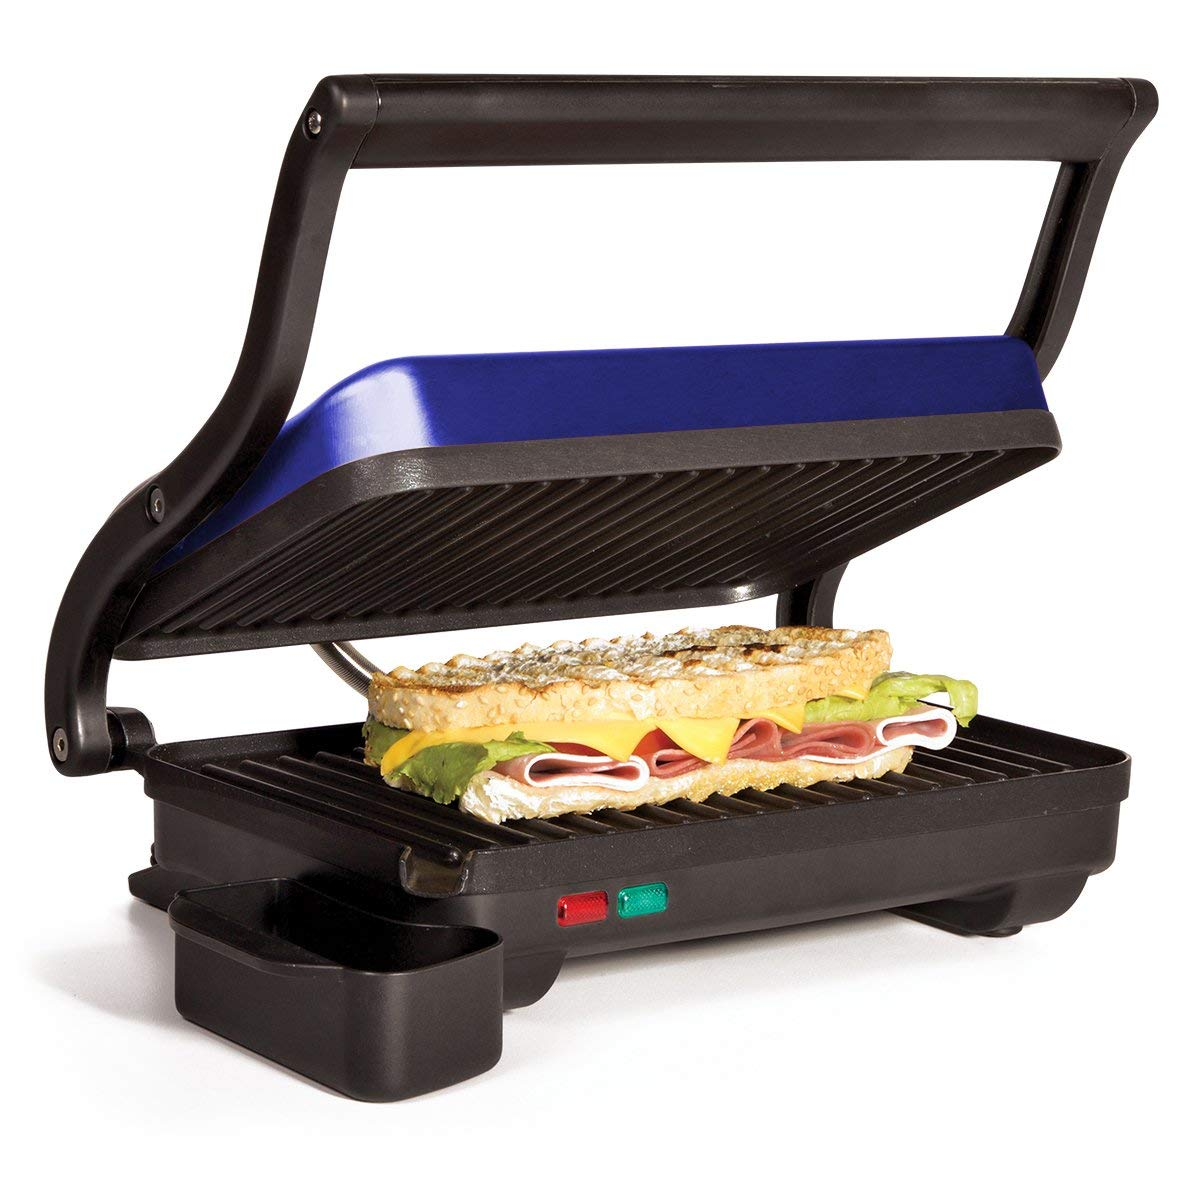 Grille Panini Cheap Panini Grill Find Panini Grill Deals On Line At Alibaba